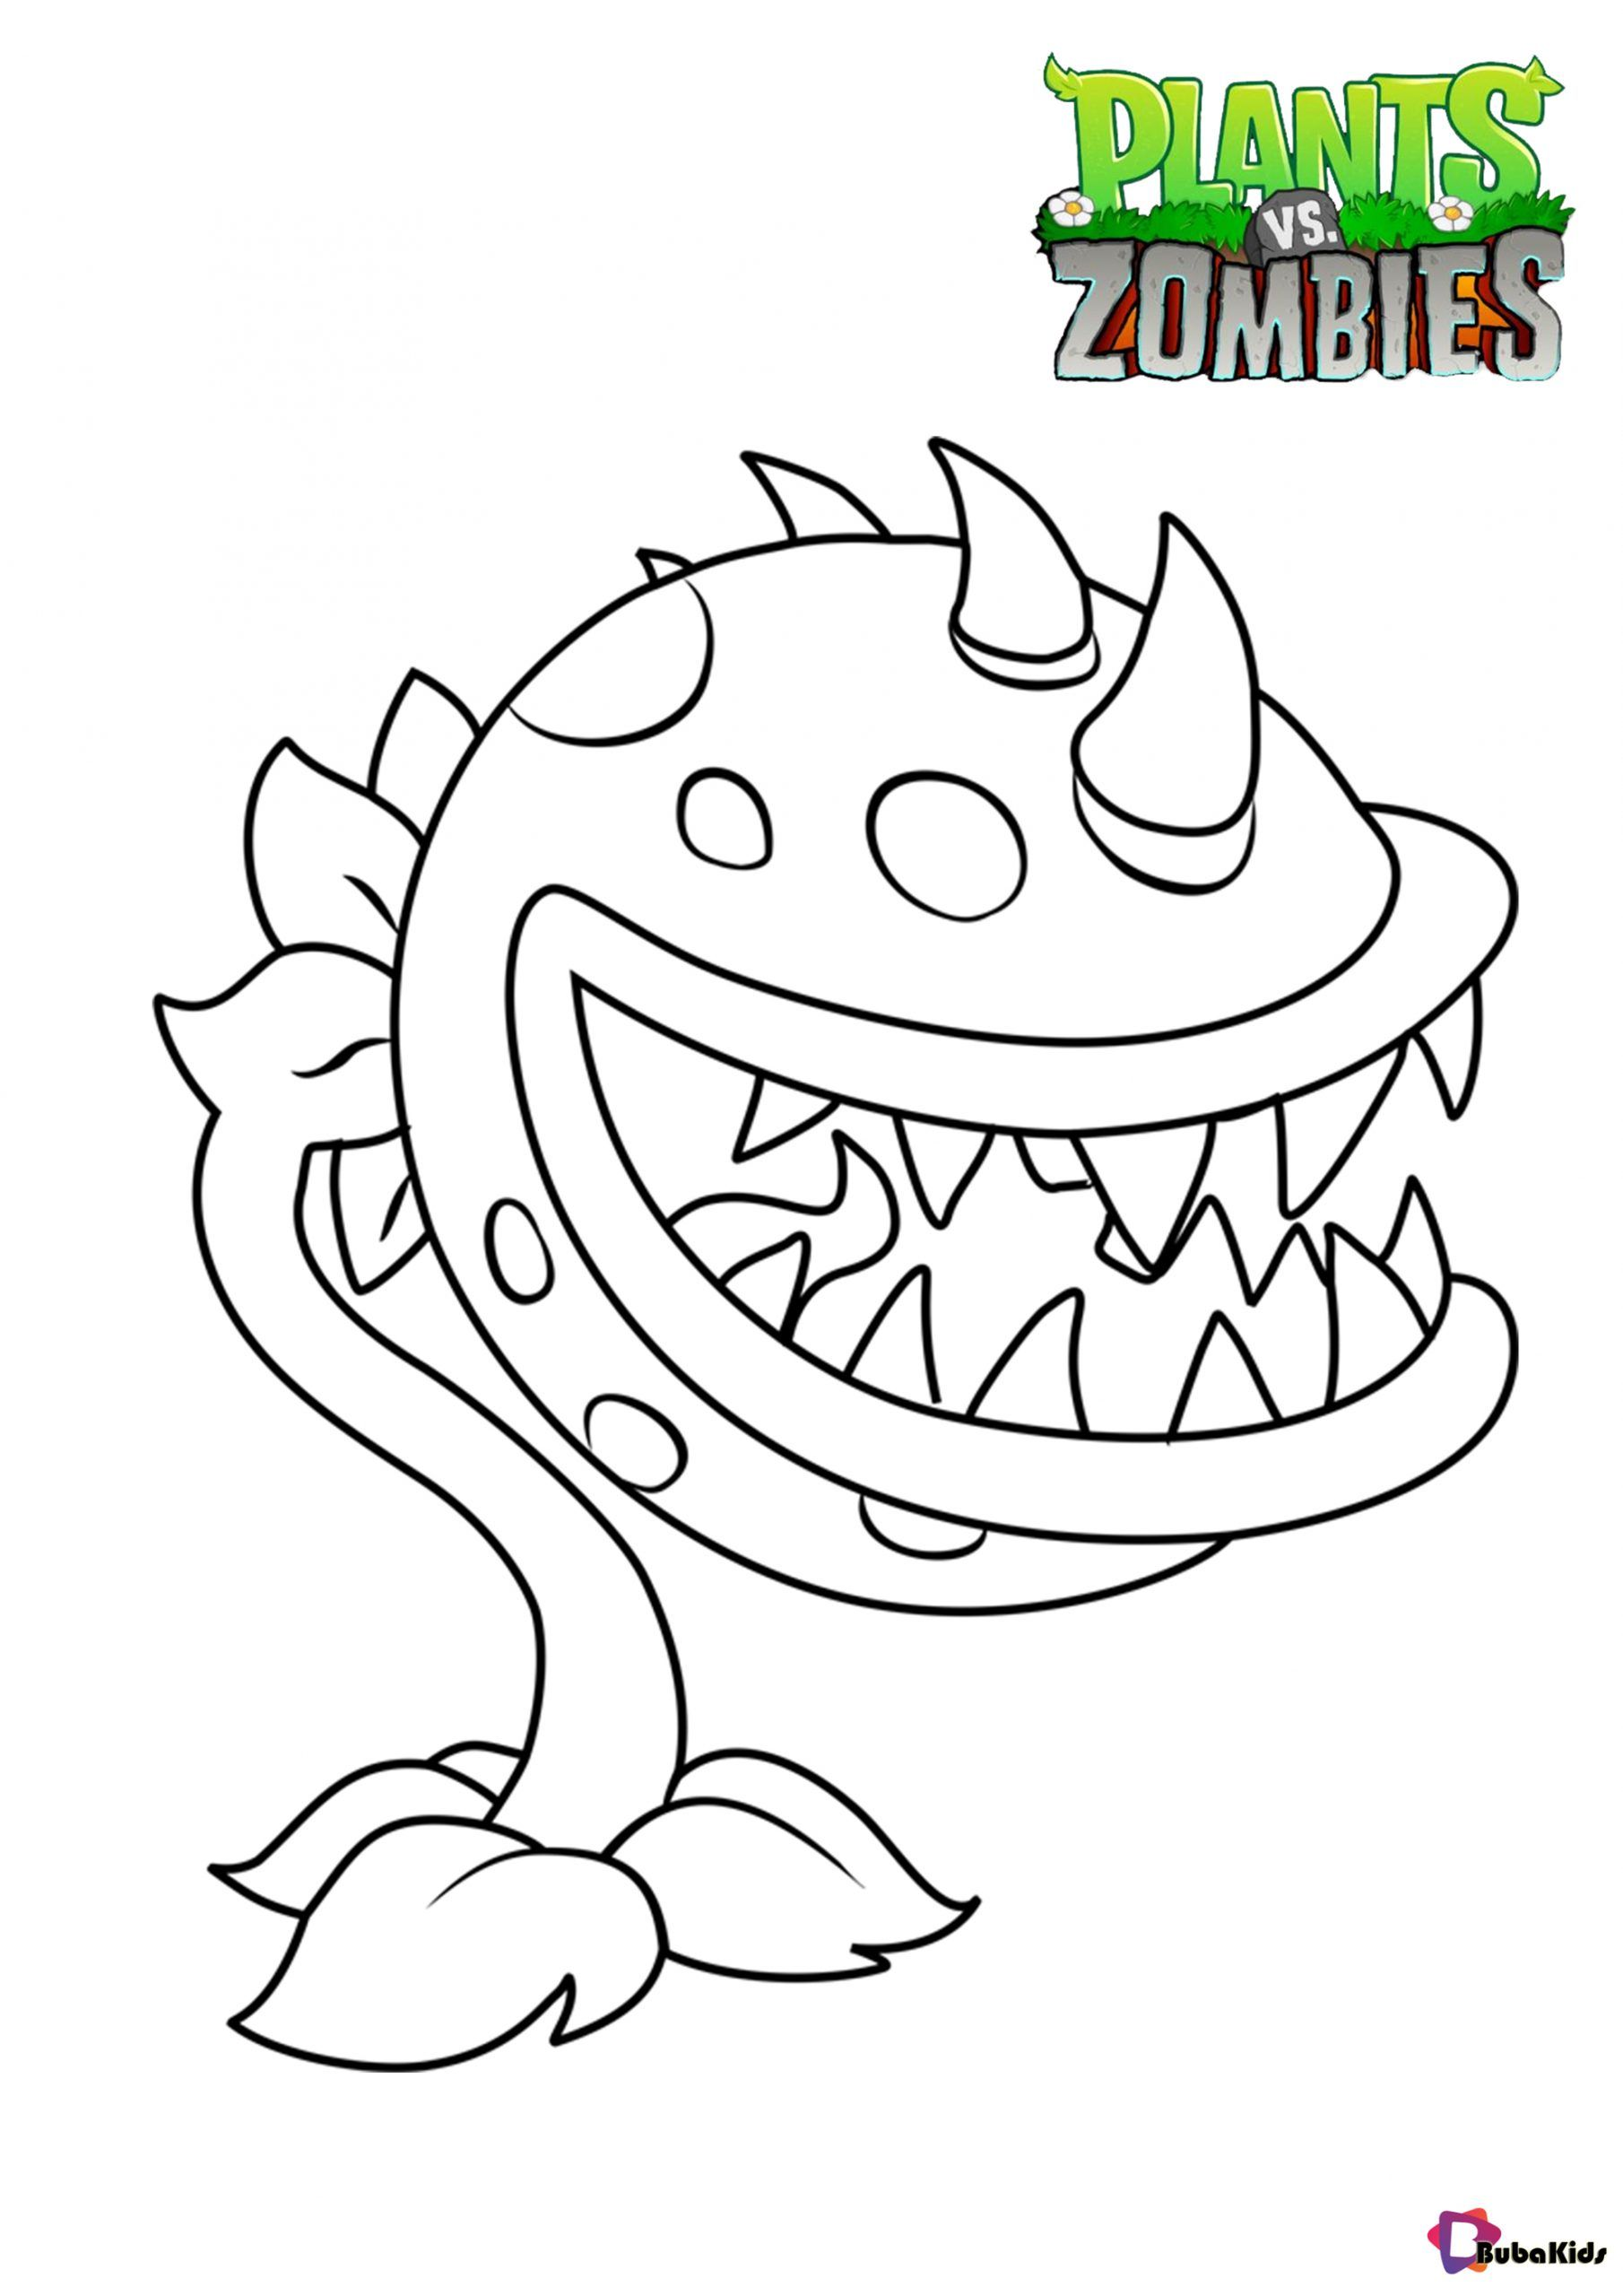 Plants Vs Zombies Chomper Coloring Pages Collection Of Cartoon Coloring Pages For Teenag Precious Moments Coloring Pages Coloring Pages Cartoon Coloring Pages